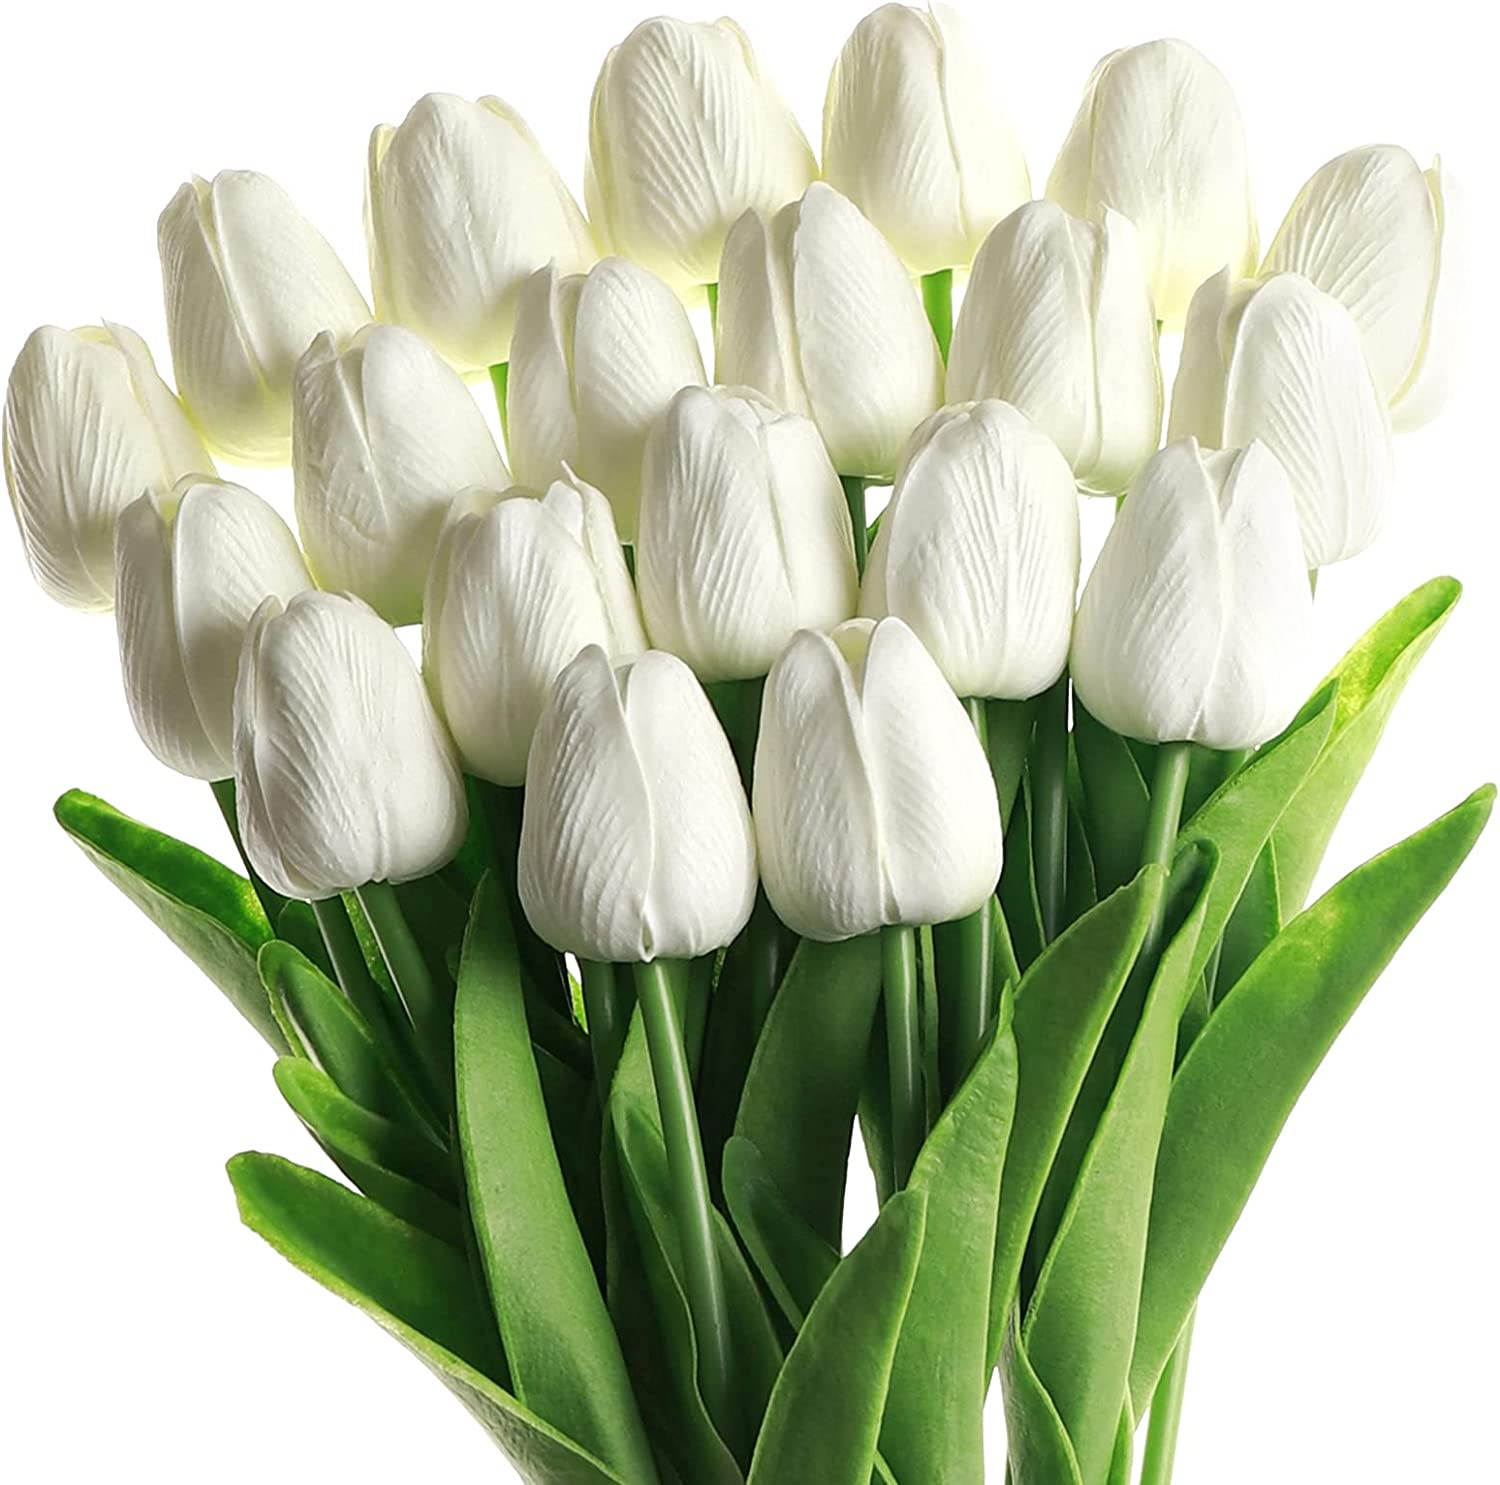 SOJIRUSPA White Tulips Artificial Flowers 20 Pcs Fake Tulips PU Real Touch Tulip Fake Flowers for Home Office Wedding Decor Artificial Tulips Flower Arrangement Bouquet Faux Flowers for Decoration